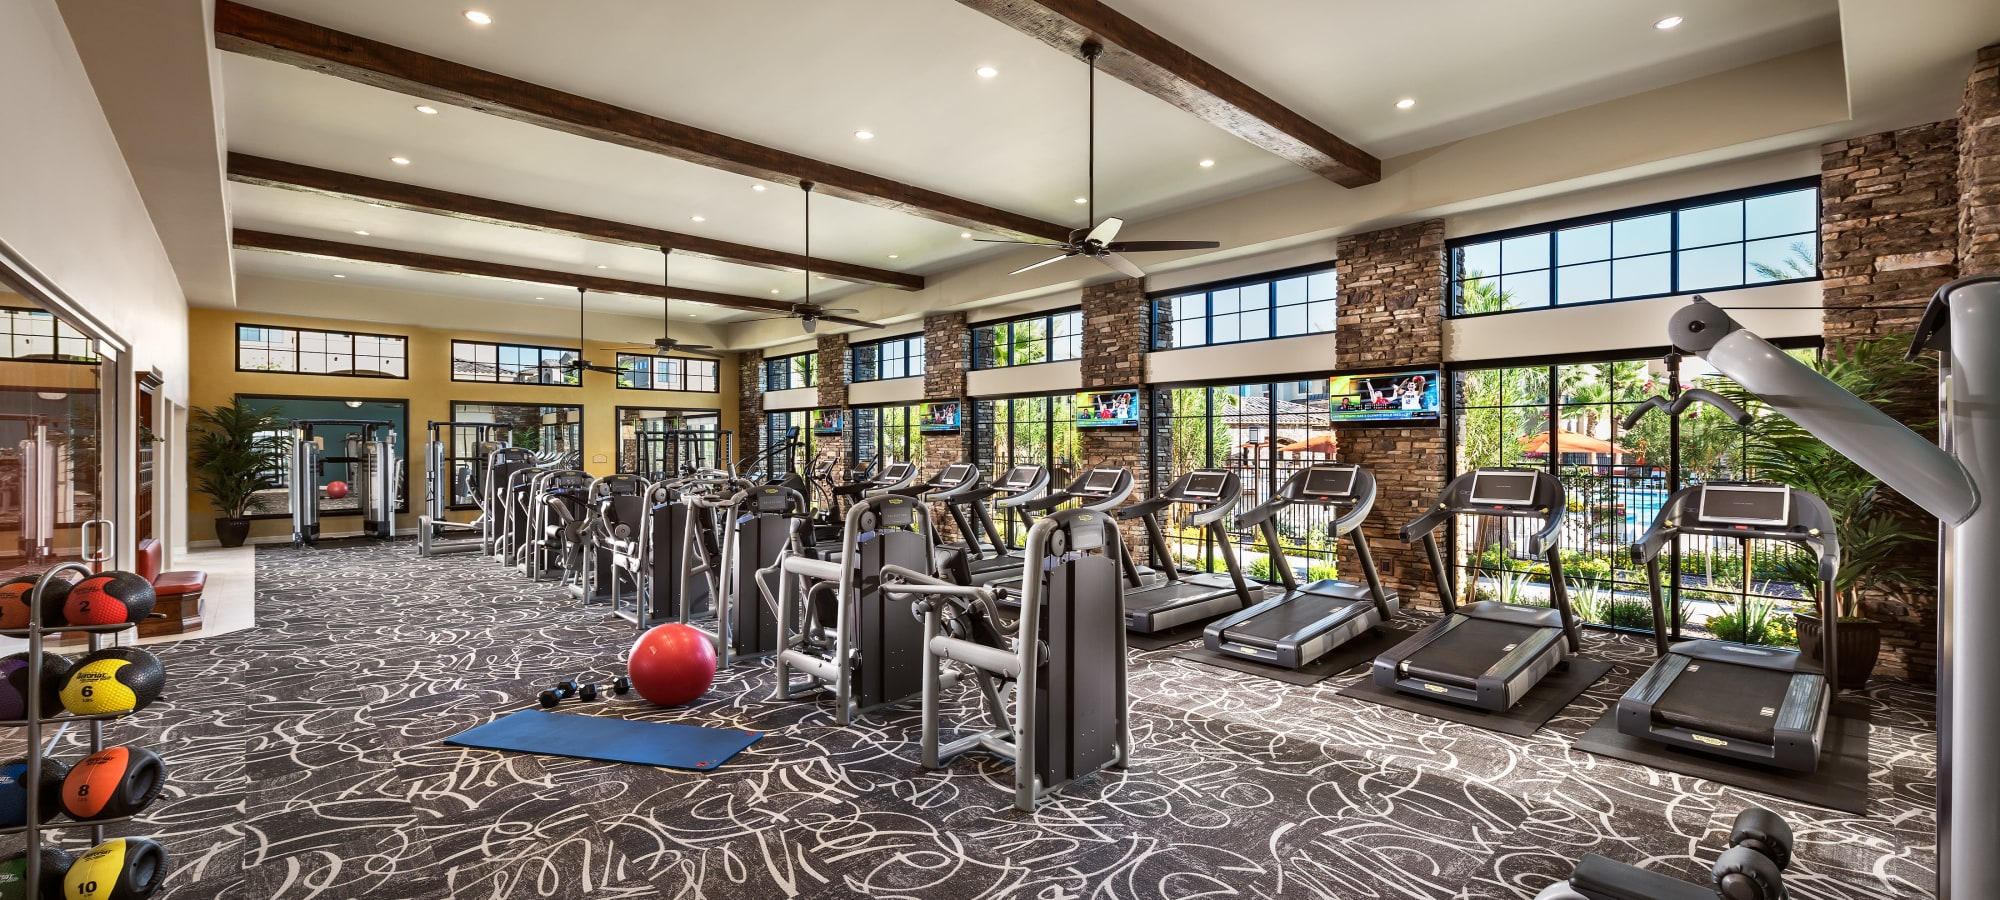 Well-equipped fitness center at San Privada in Gilbert, Arizona